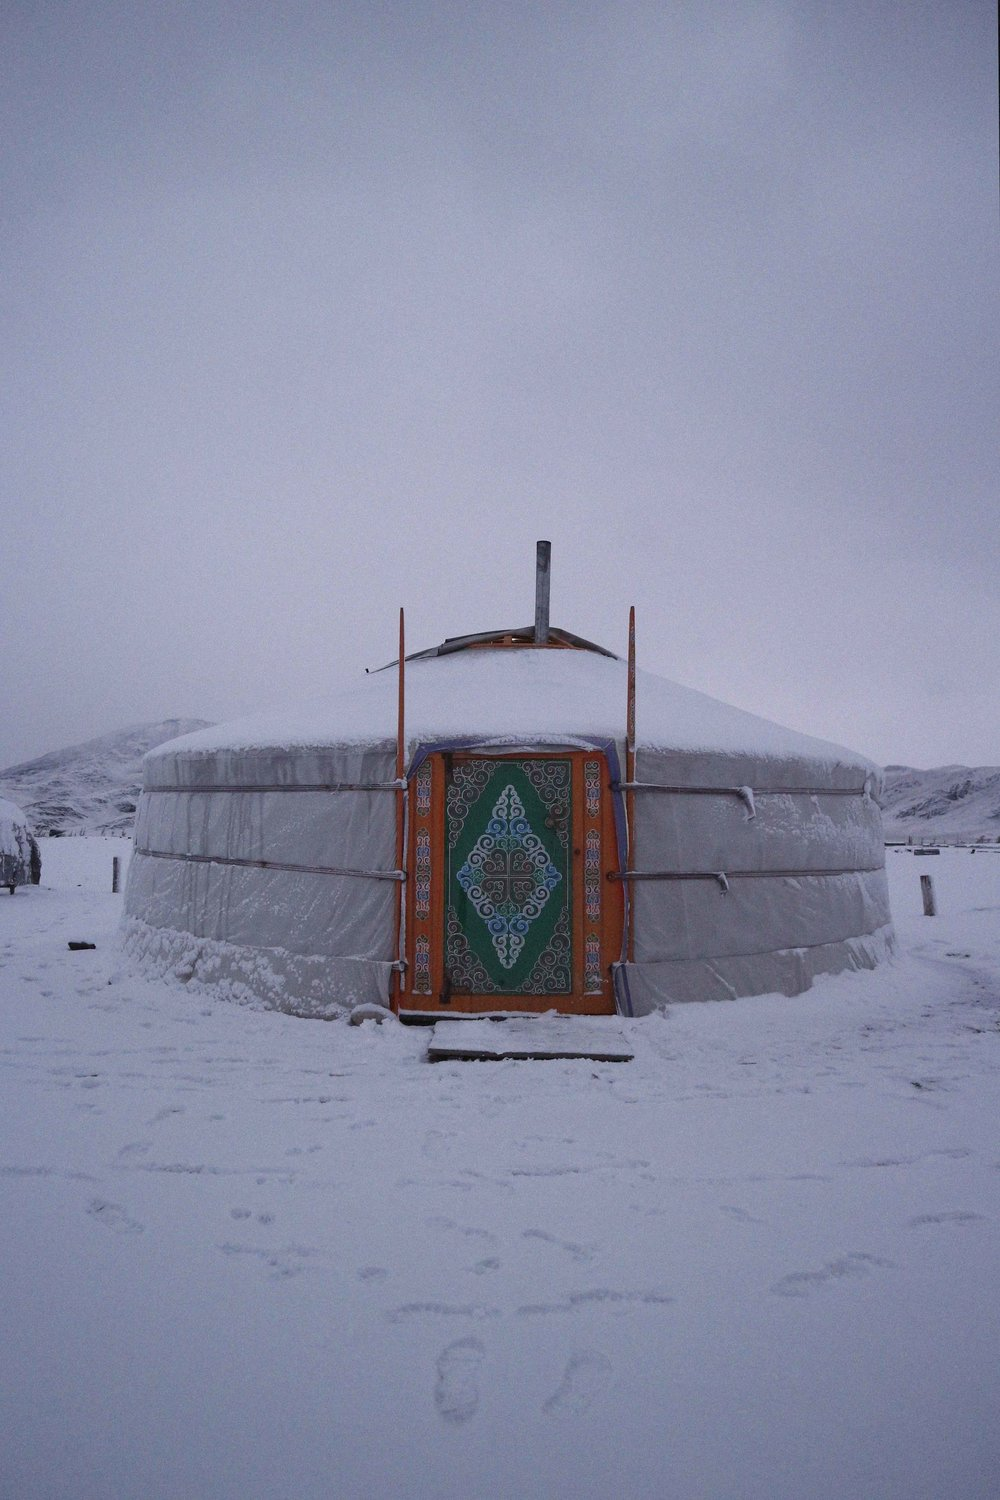 Snowy ger Mongolia